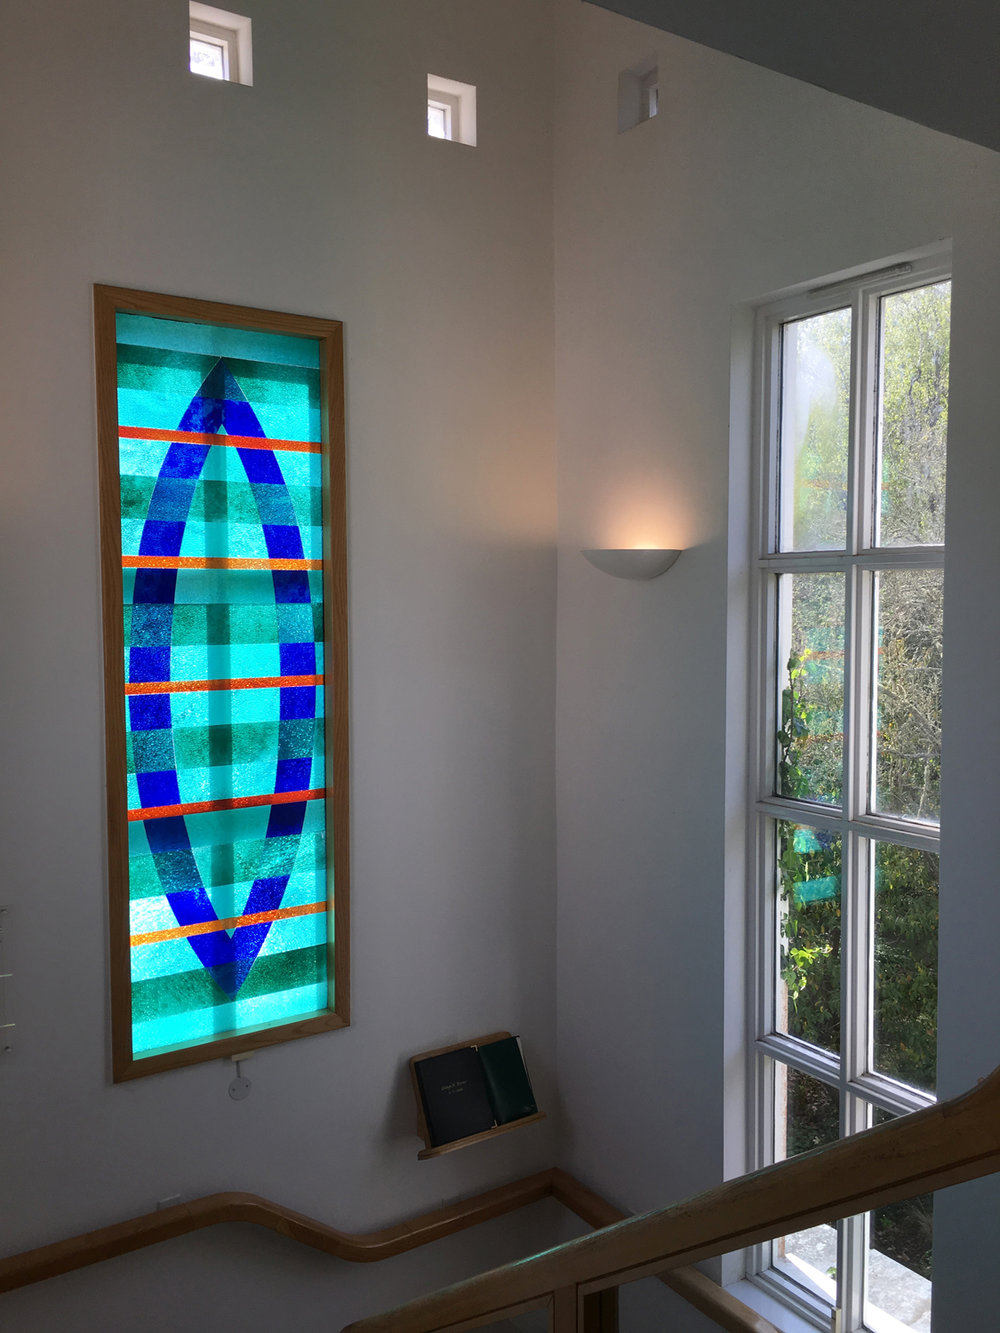 6 Penlee House Art Gallery & Museum - Memorial window.jpg